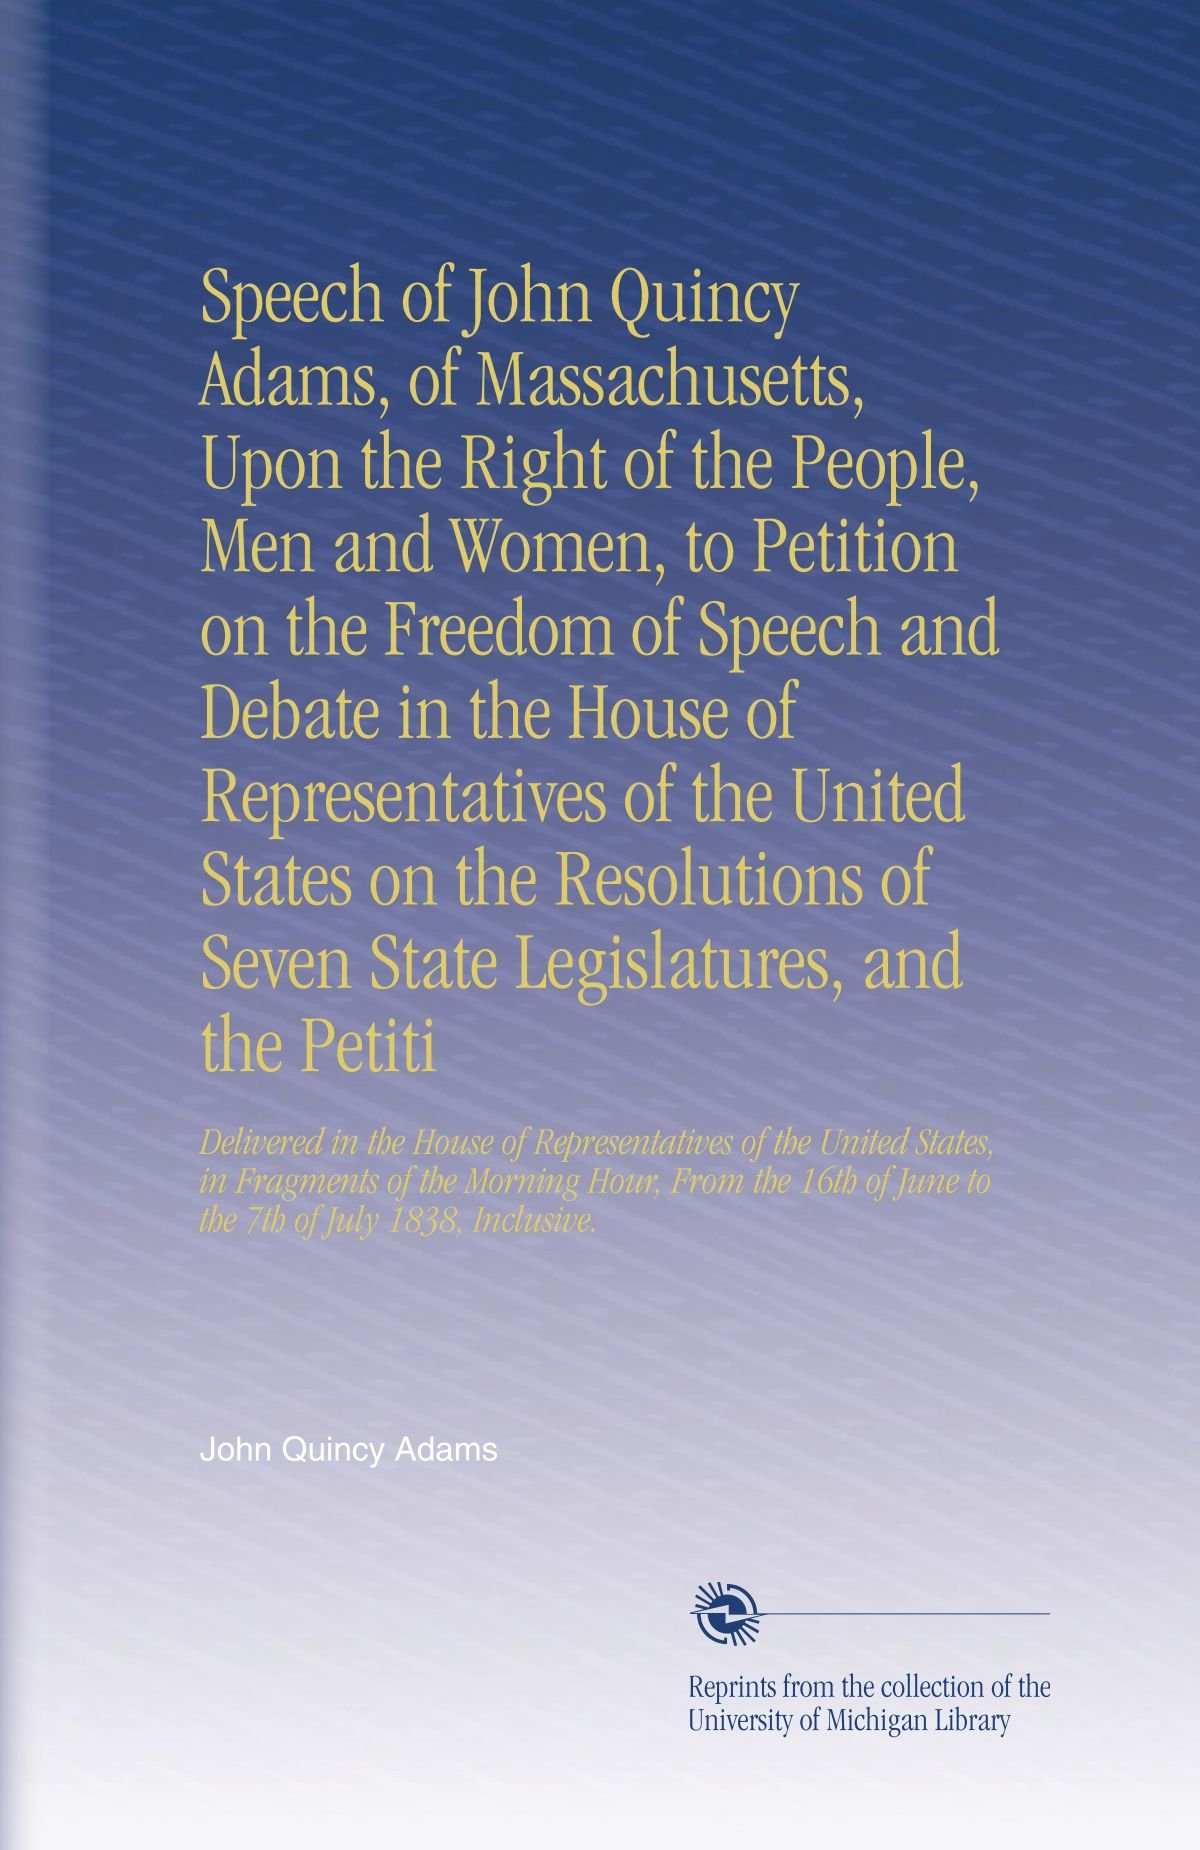 Download Speech of John Quincy Adams, of Massachusetts, Upon the Right of the People, Men and Women, to Petition on the Freedom of Speech and Debate in the ... of June to the 7th of July 1838, Inclusive. ebook